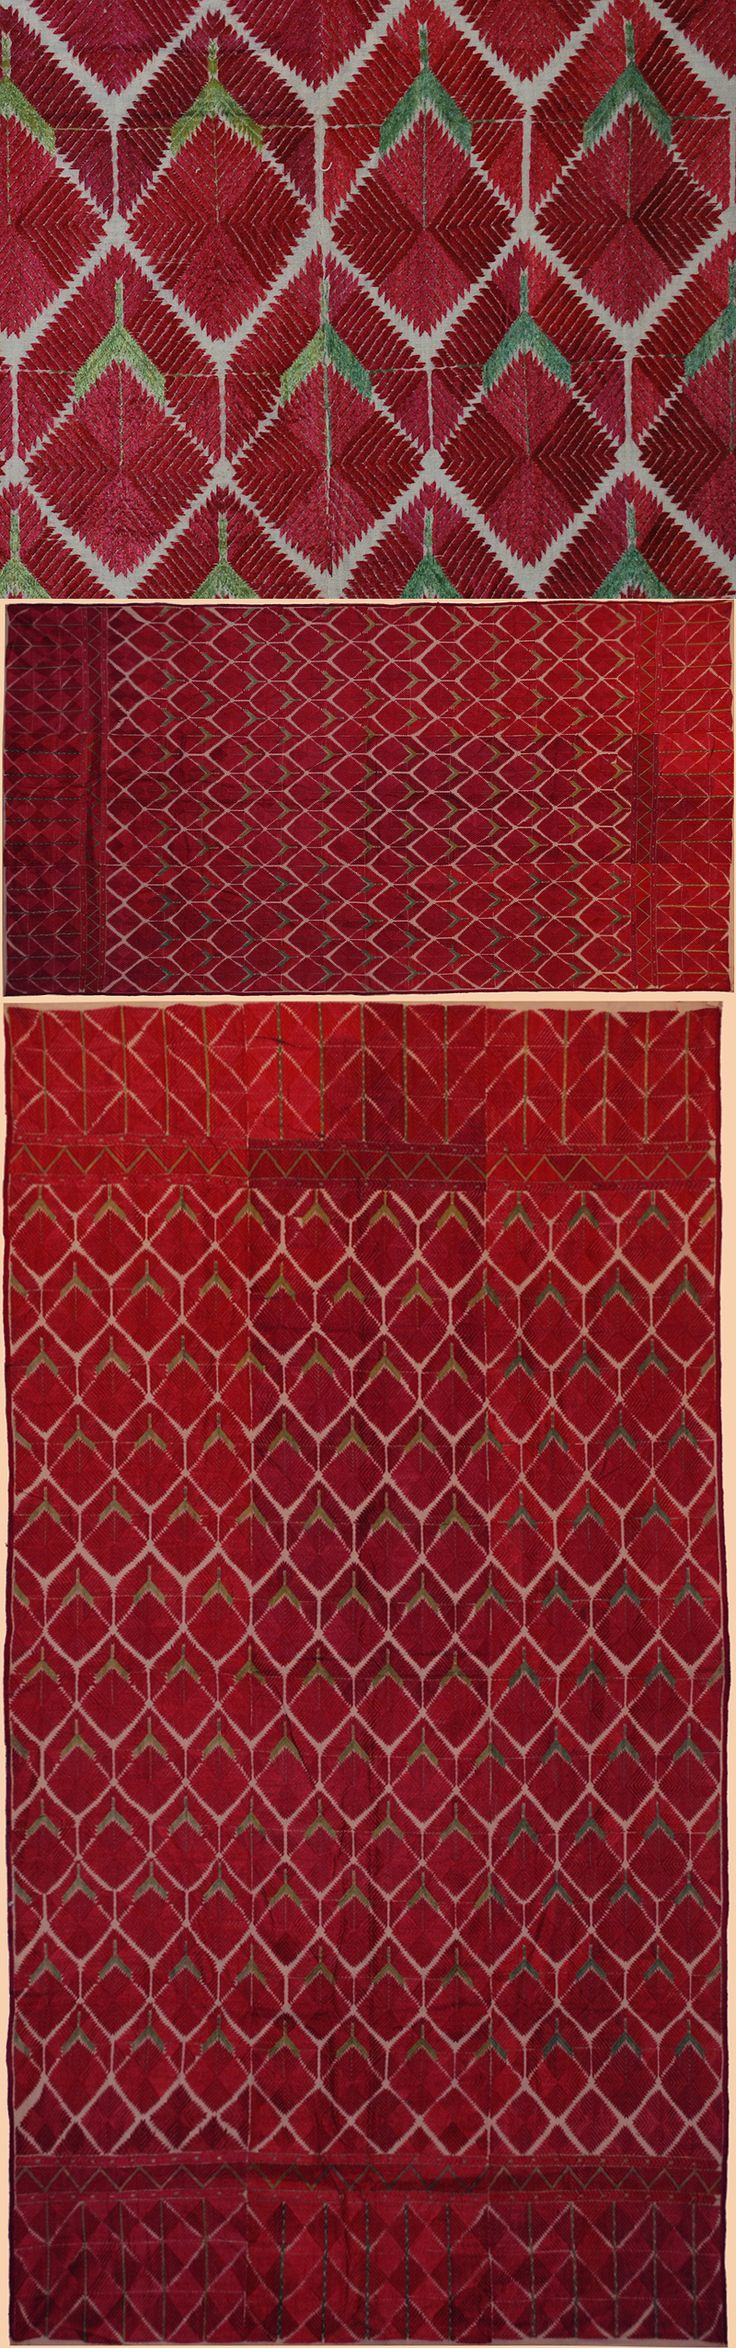 Eastern Punjabi four panel shawl, ca. 1800-1900